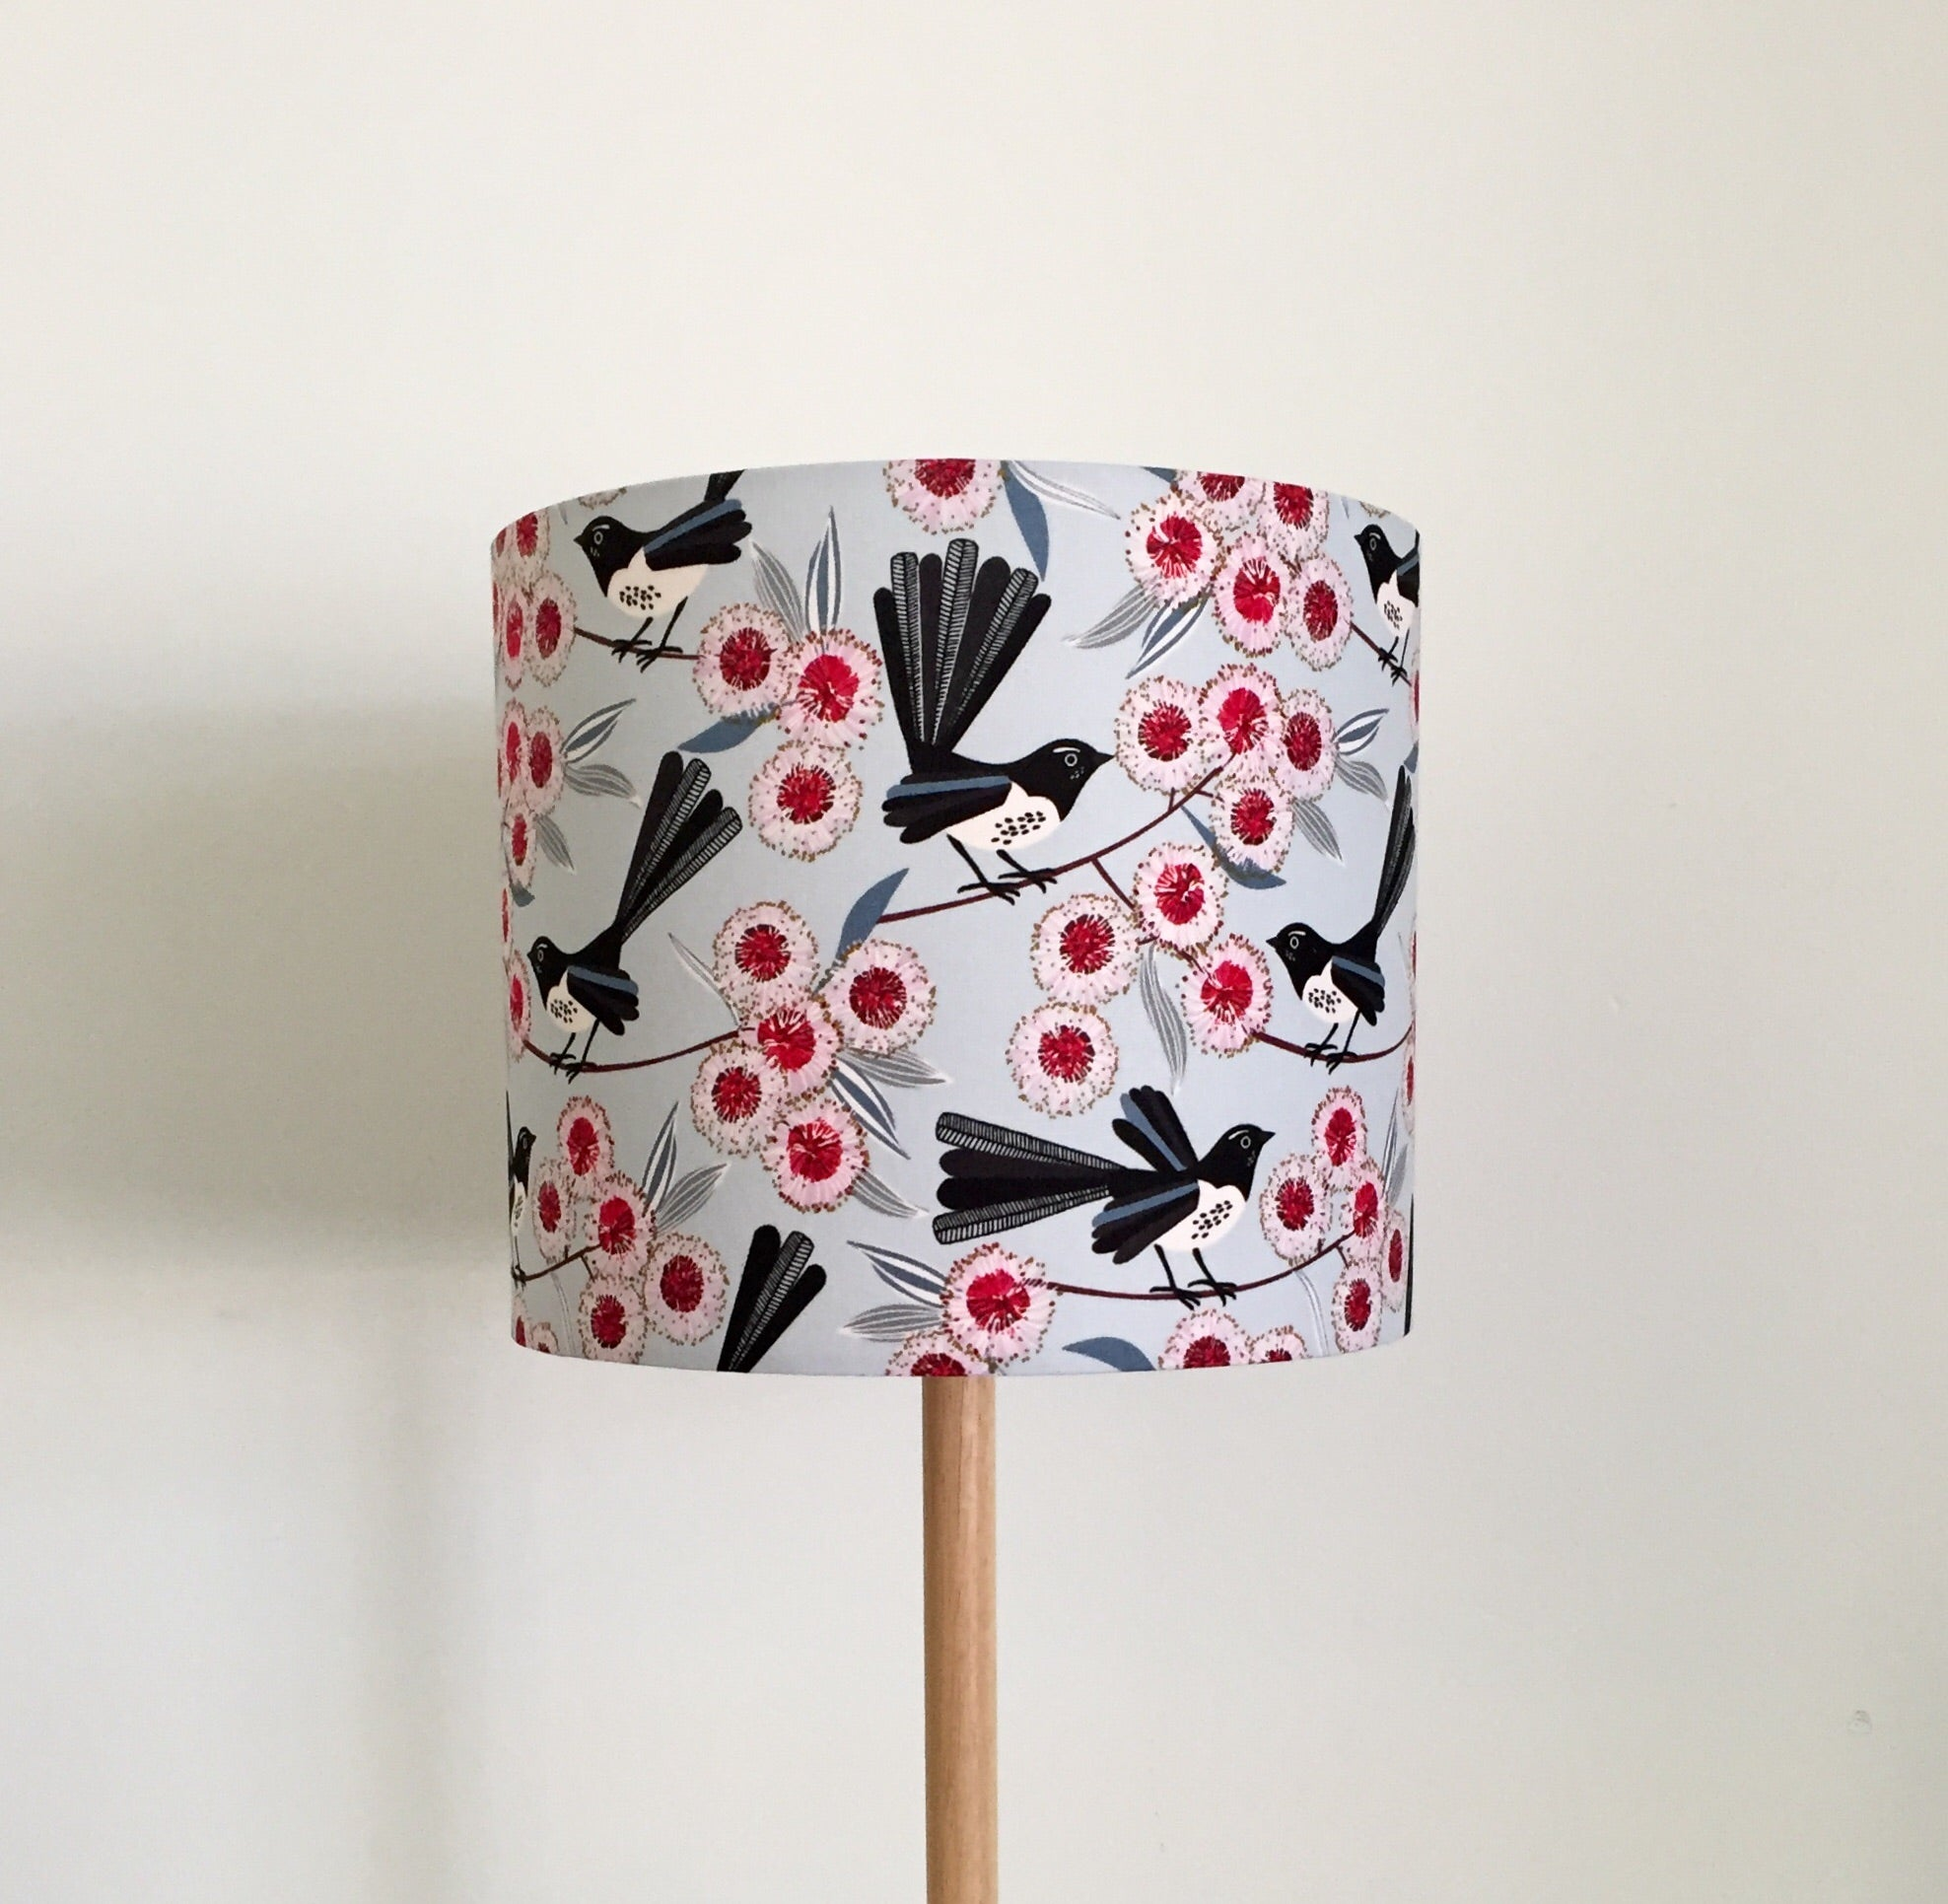 Willy Wag Tail Lampshade